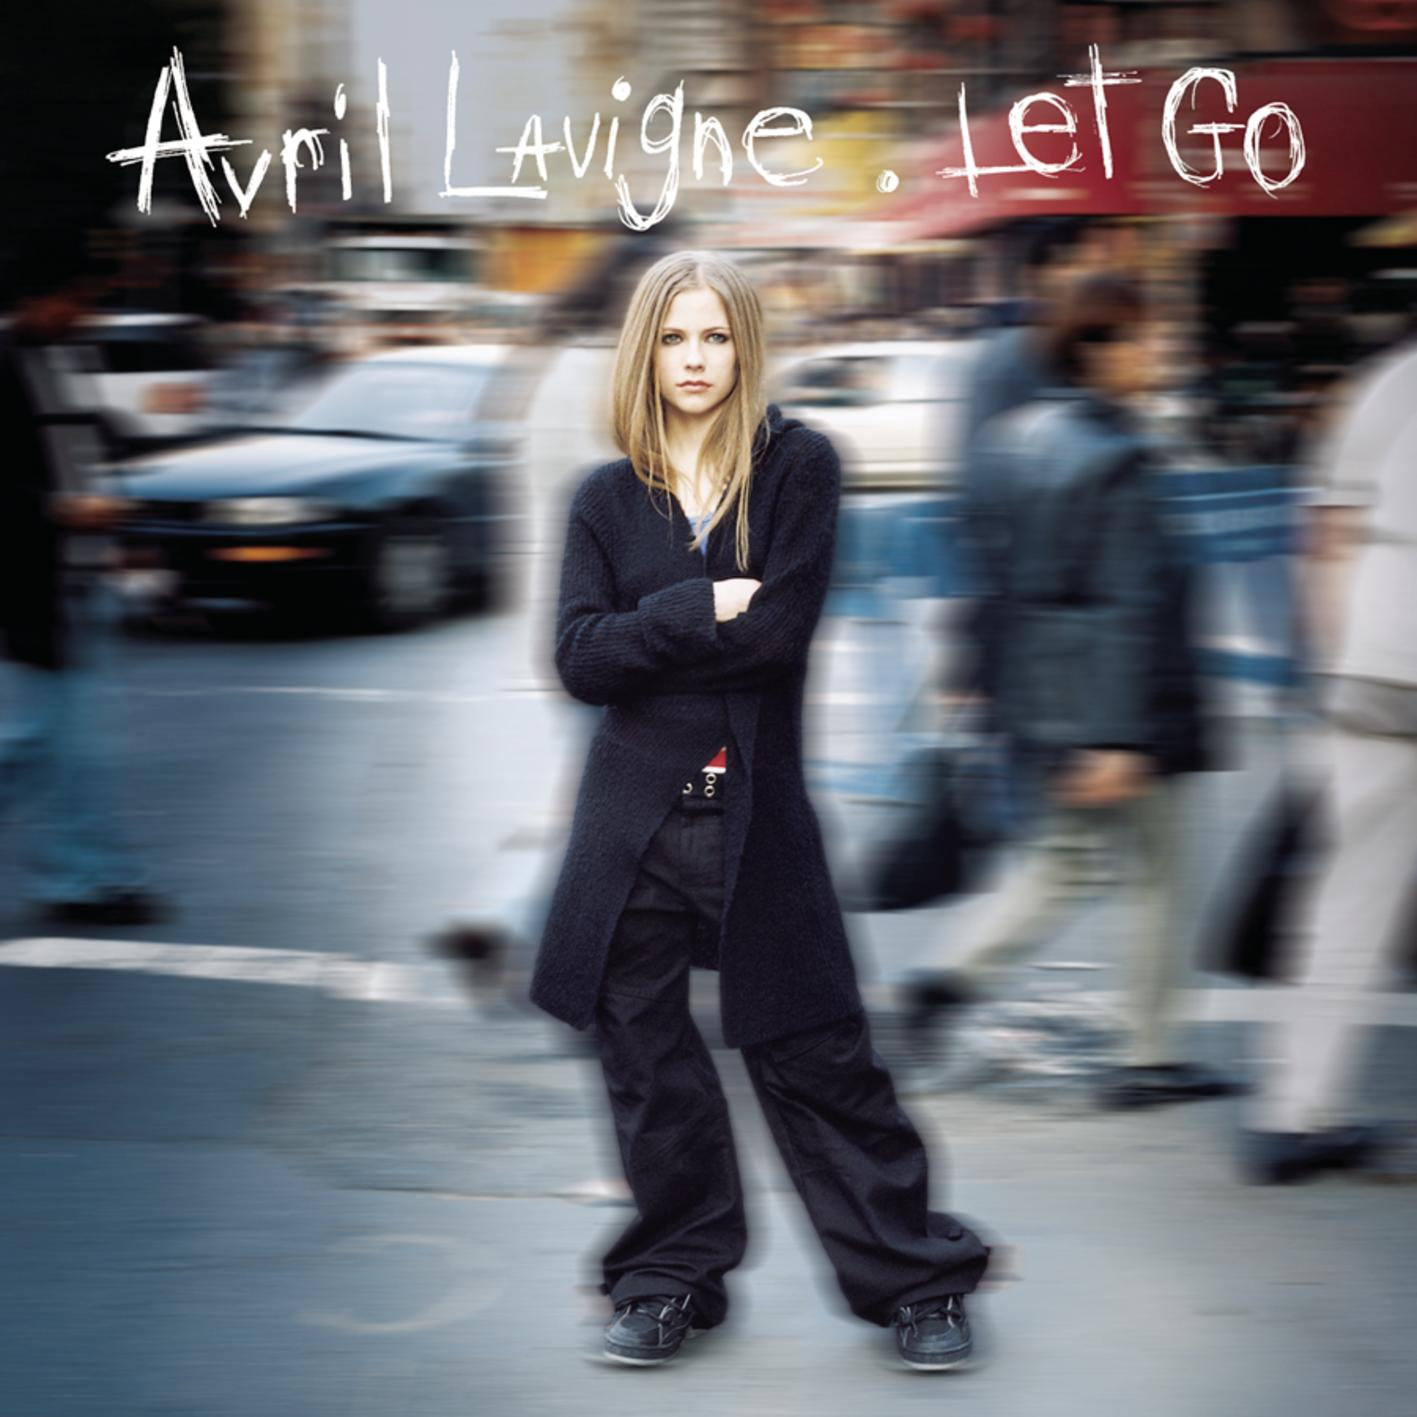 A homage to Avril Lavigne